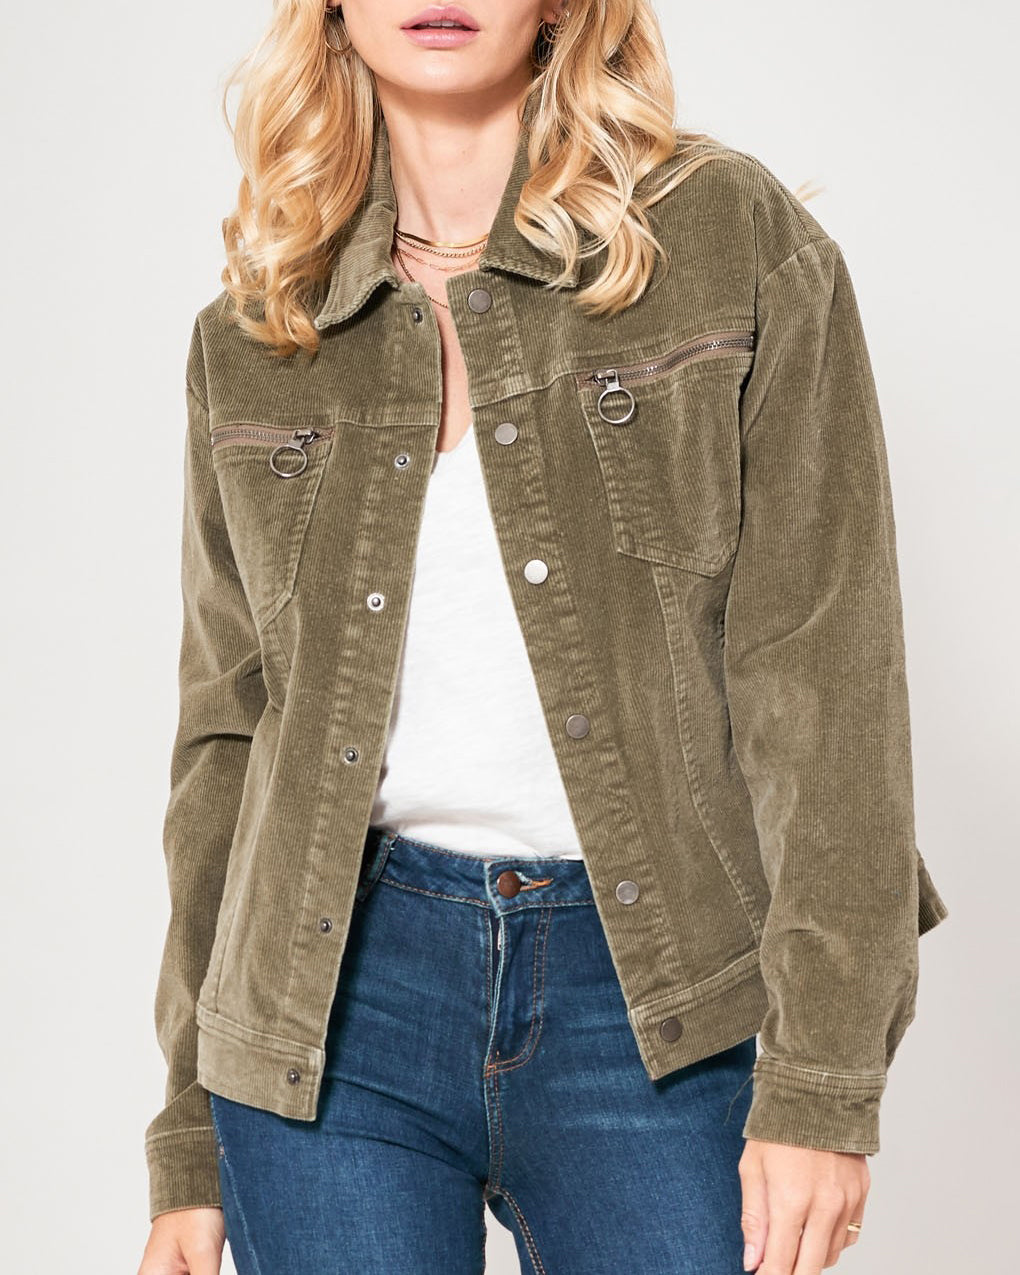 Promesa Olive Green Corduroy Button Up Jacket Savvy Chic Boutique Cleveland Ohio